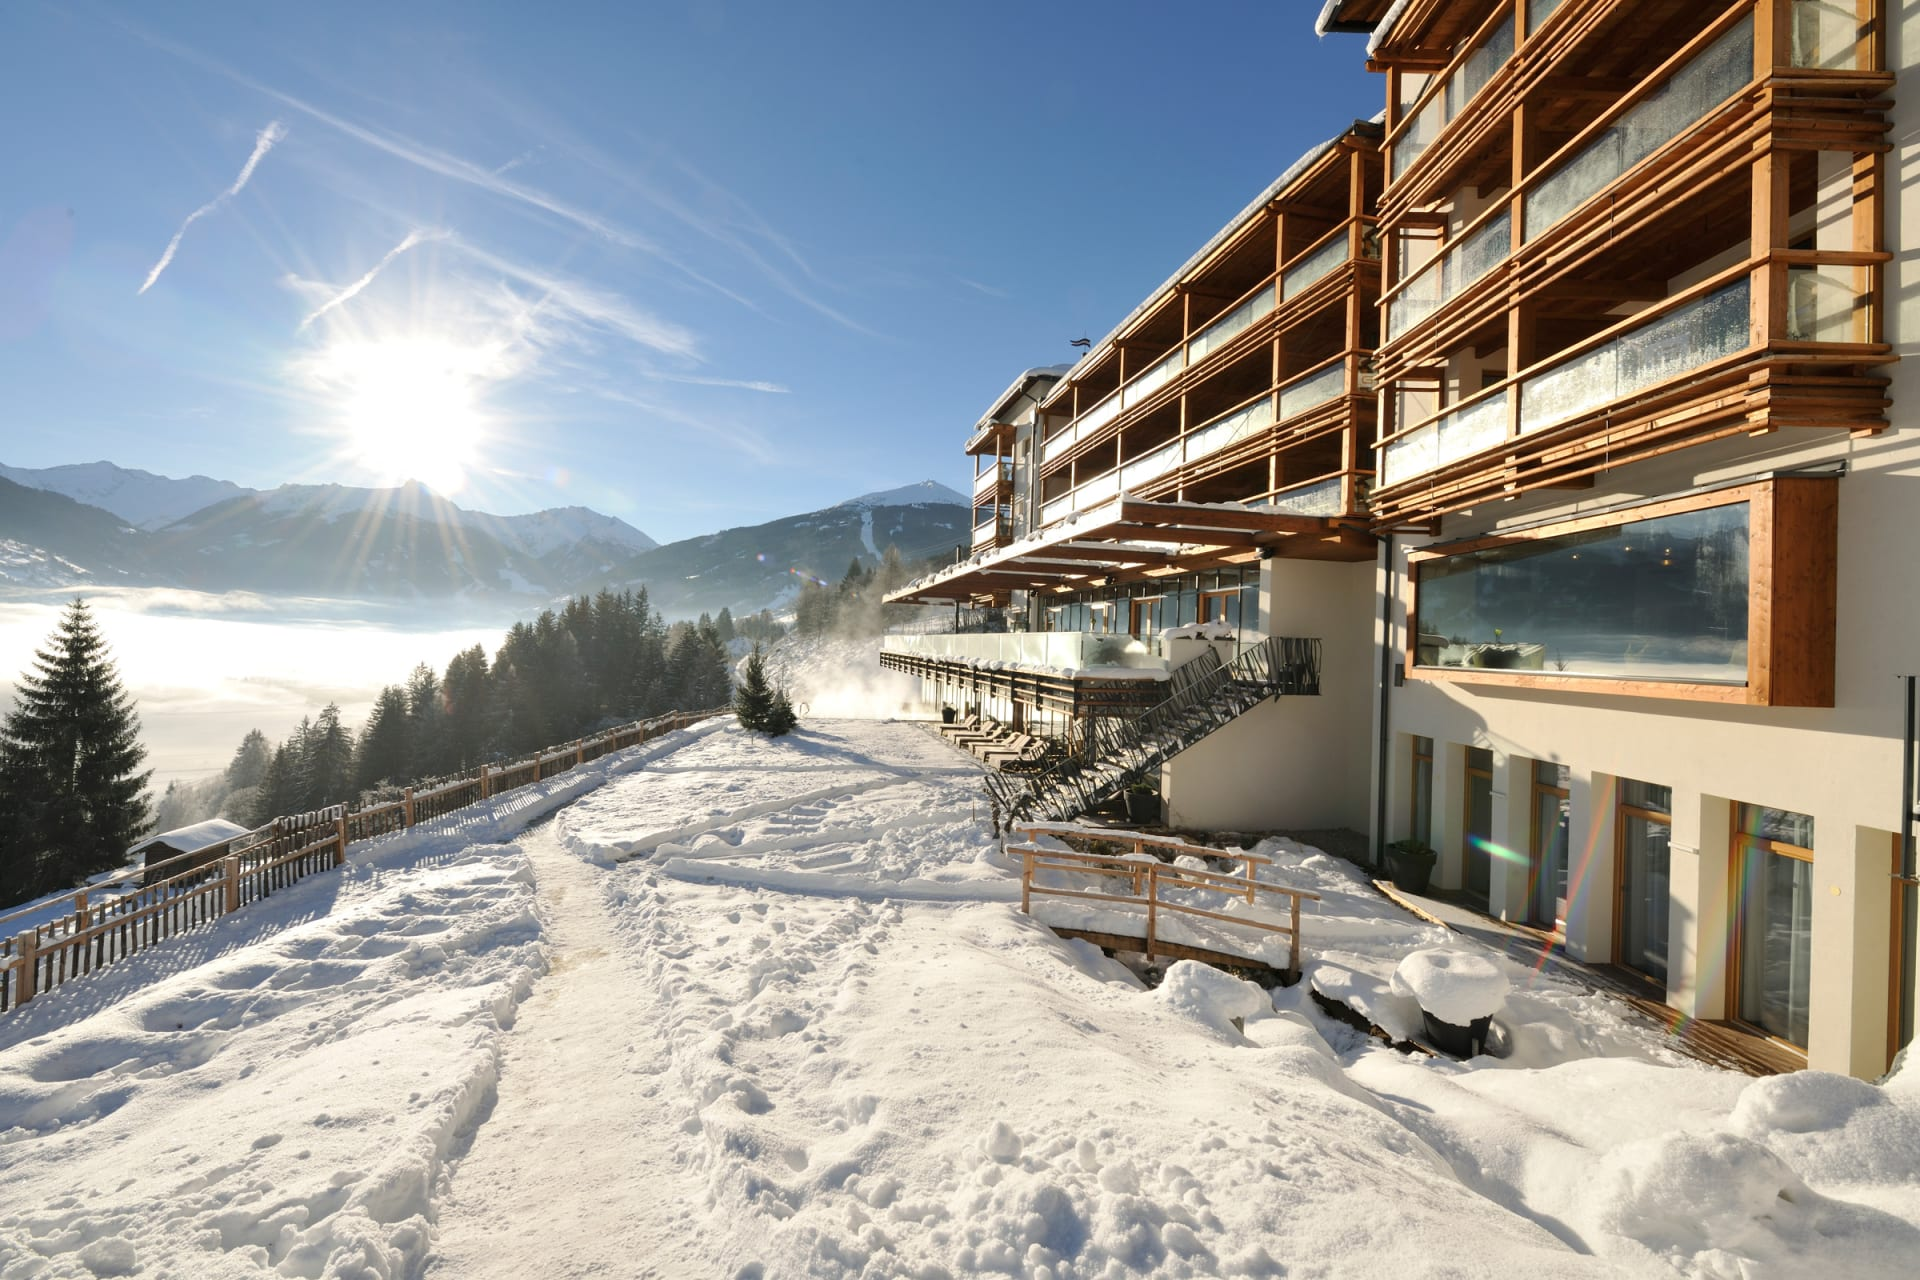 Hotel DAS.GOLDBERG Bad Hofgastein My white weeks ... 7 nights